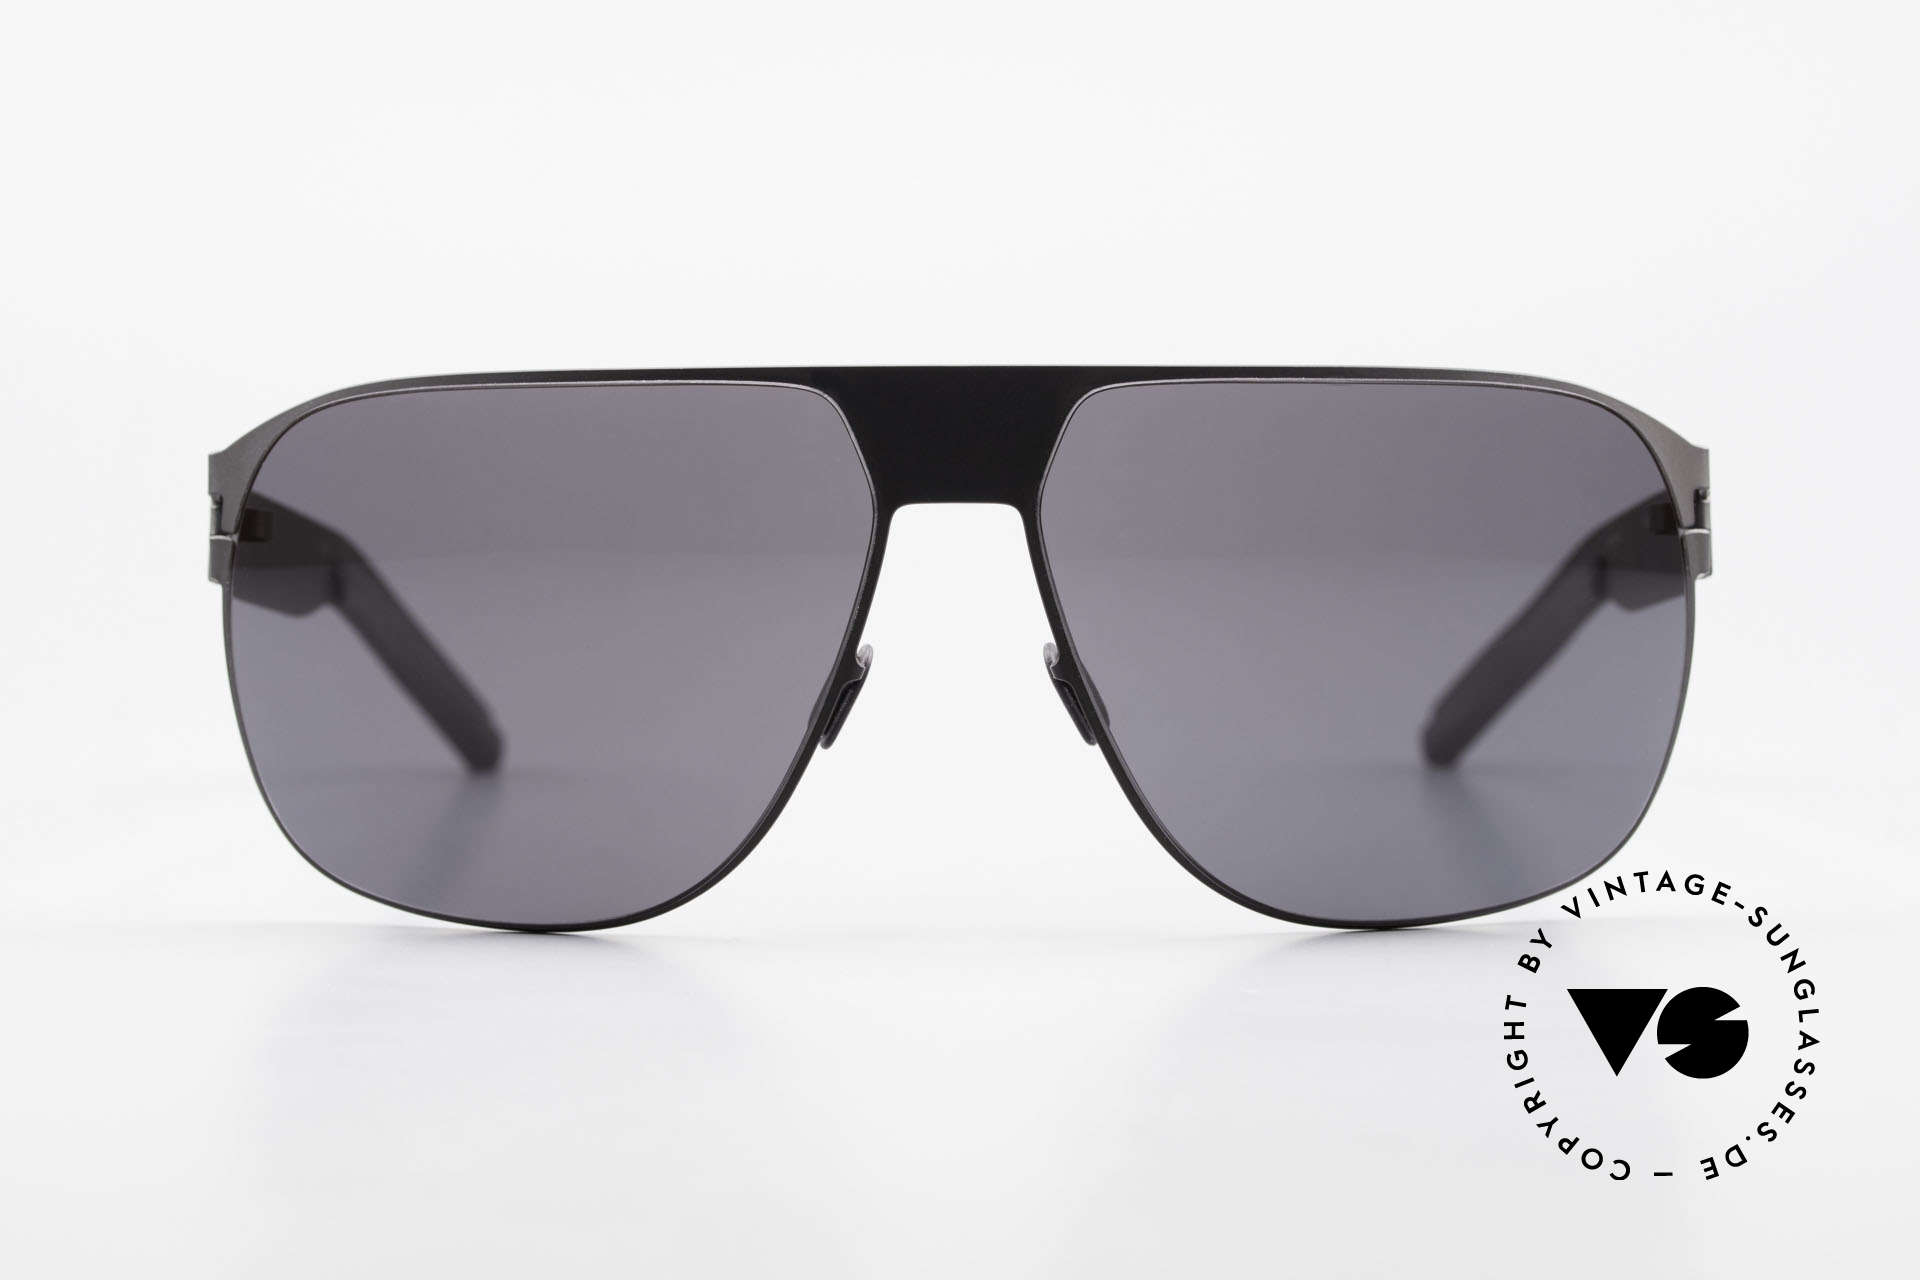 Mykita Tim No 1 Collection Shades 2011's, MYKITA: the youngest brand in our vintage collection, Made for Men